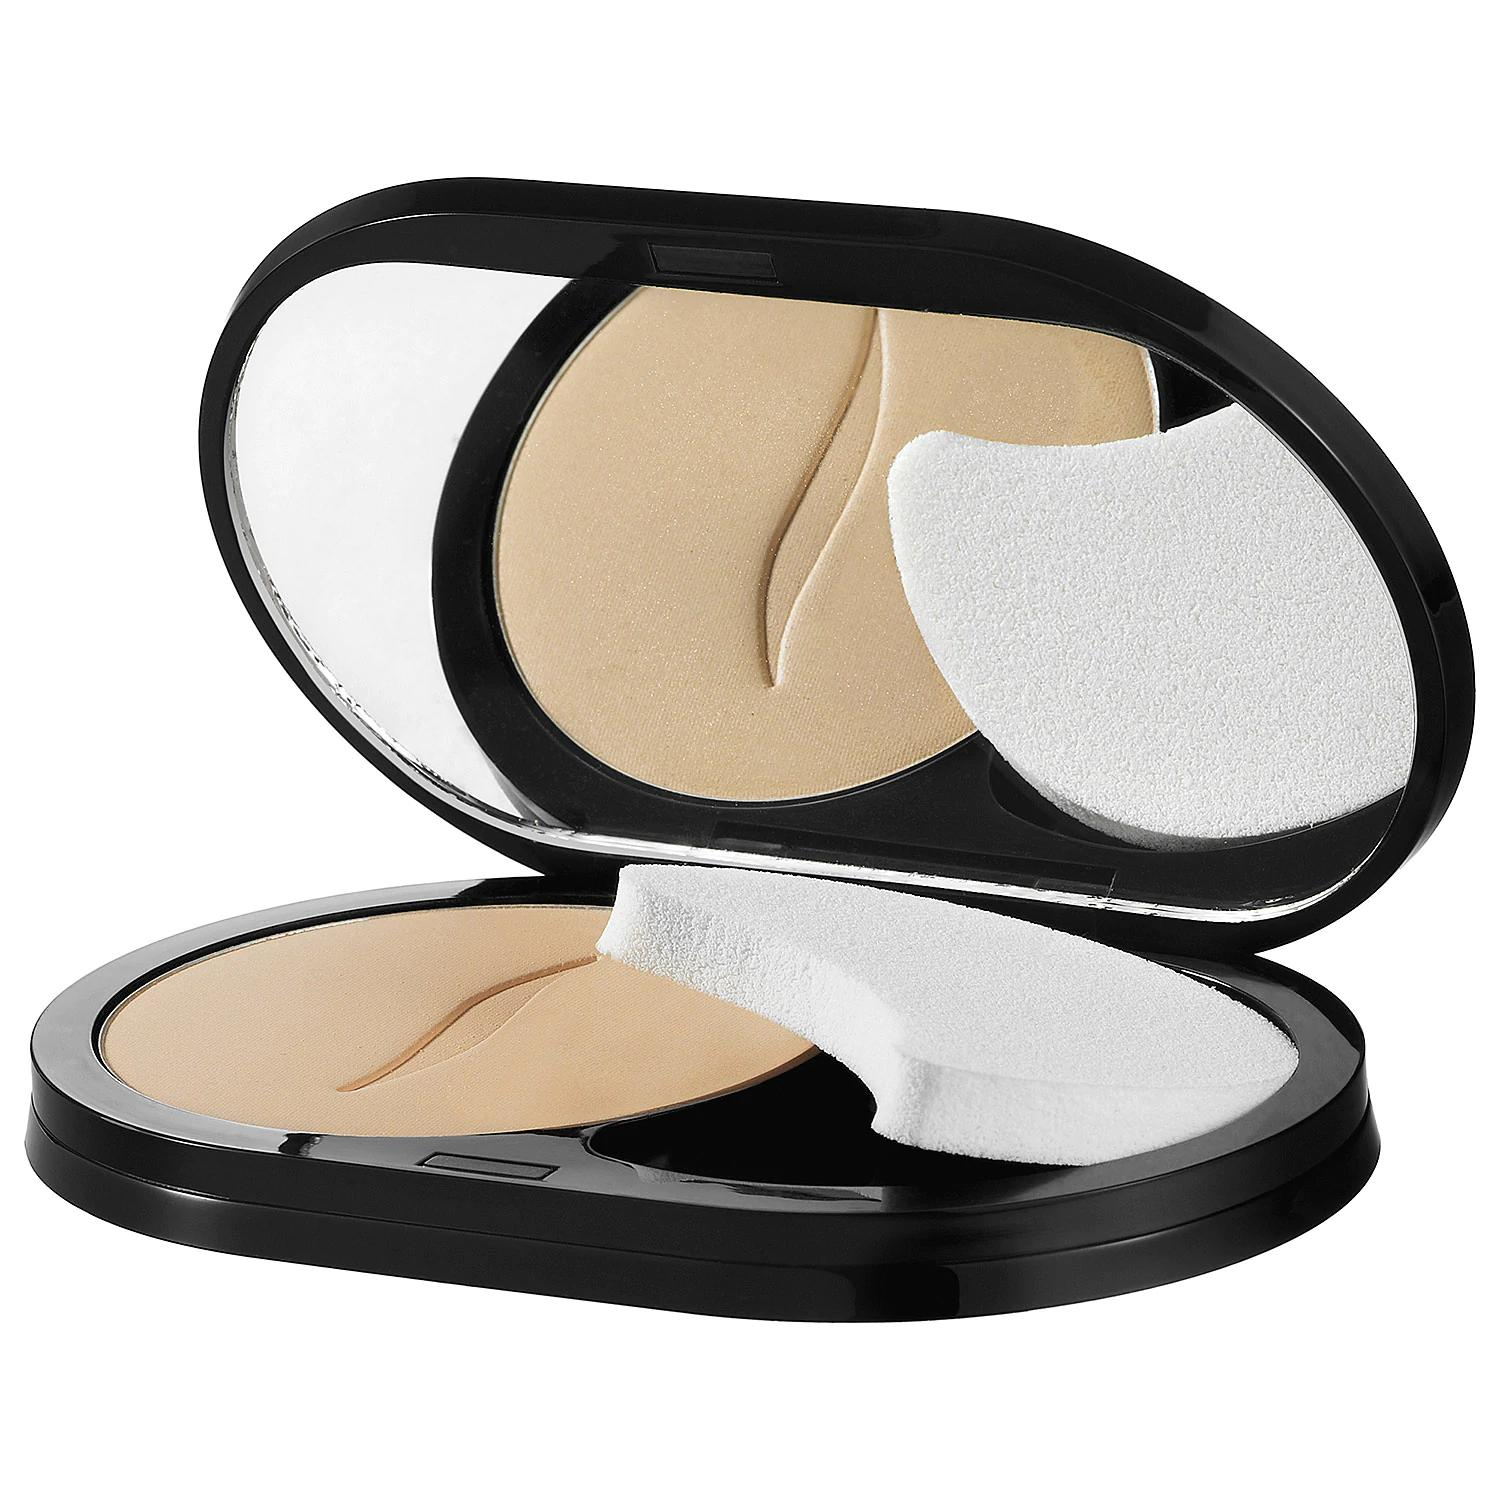 Sephora 8 HR Mattifying Compact Foundation Porcelain 05